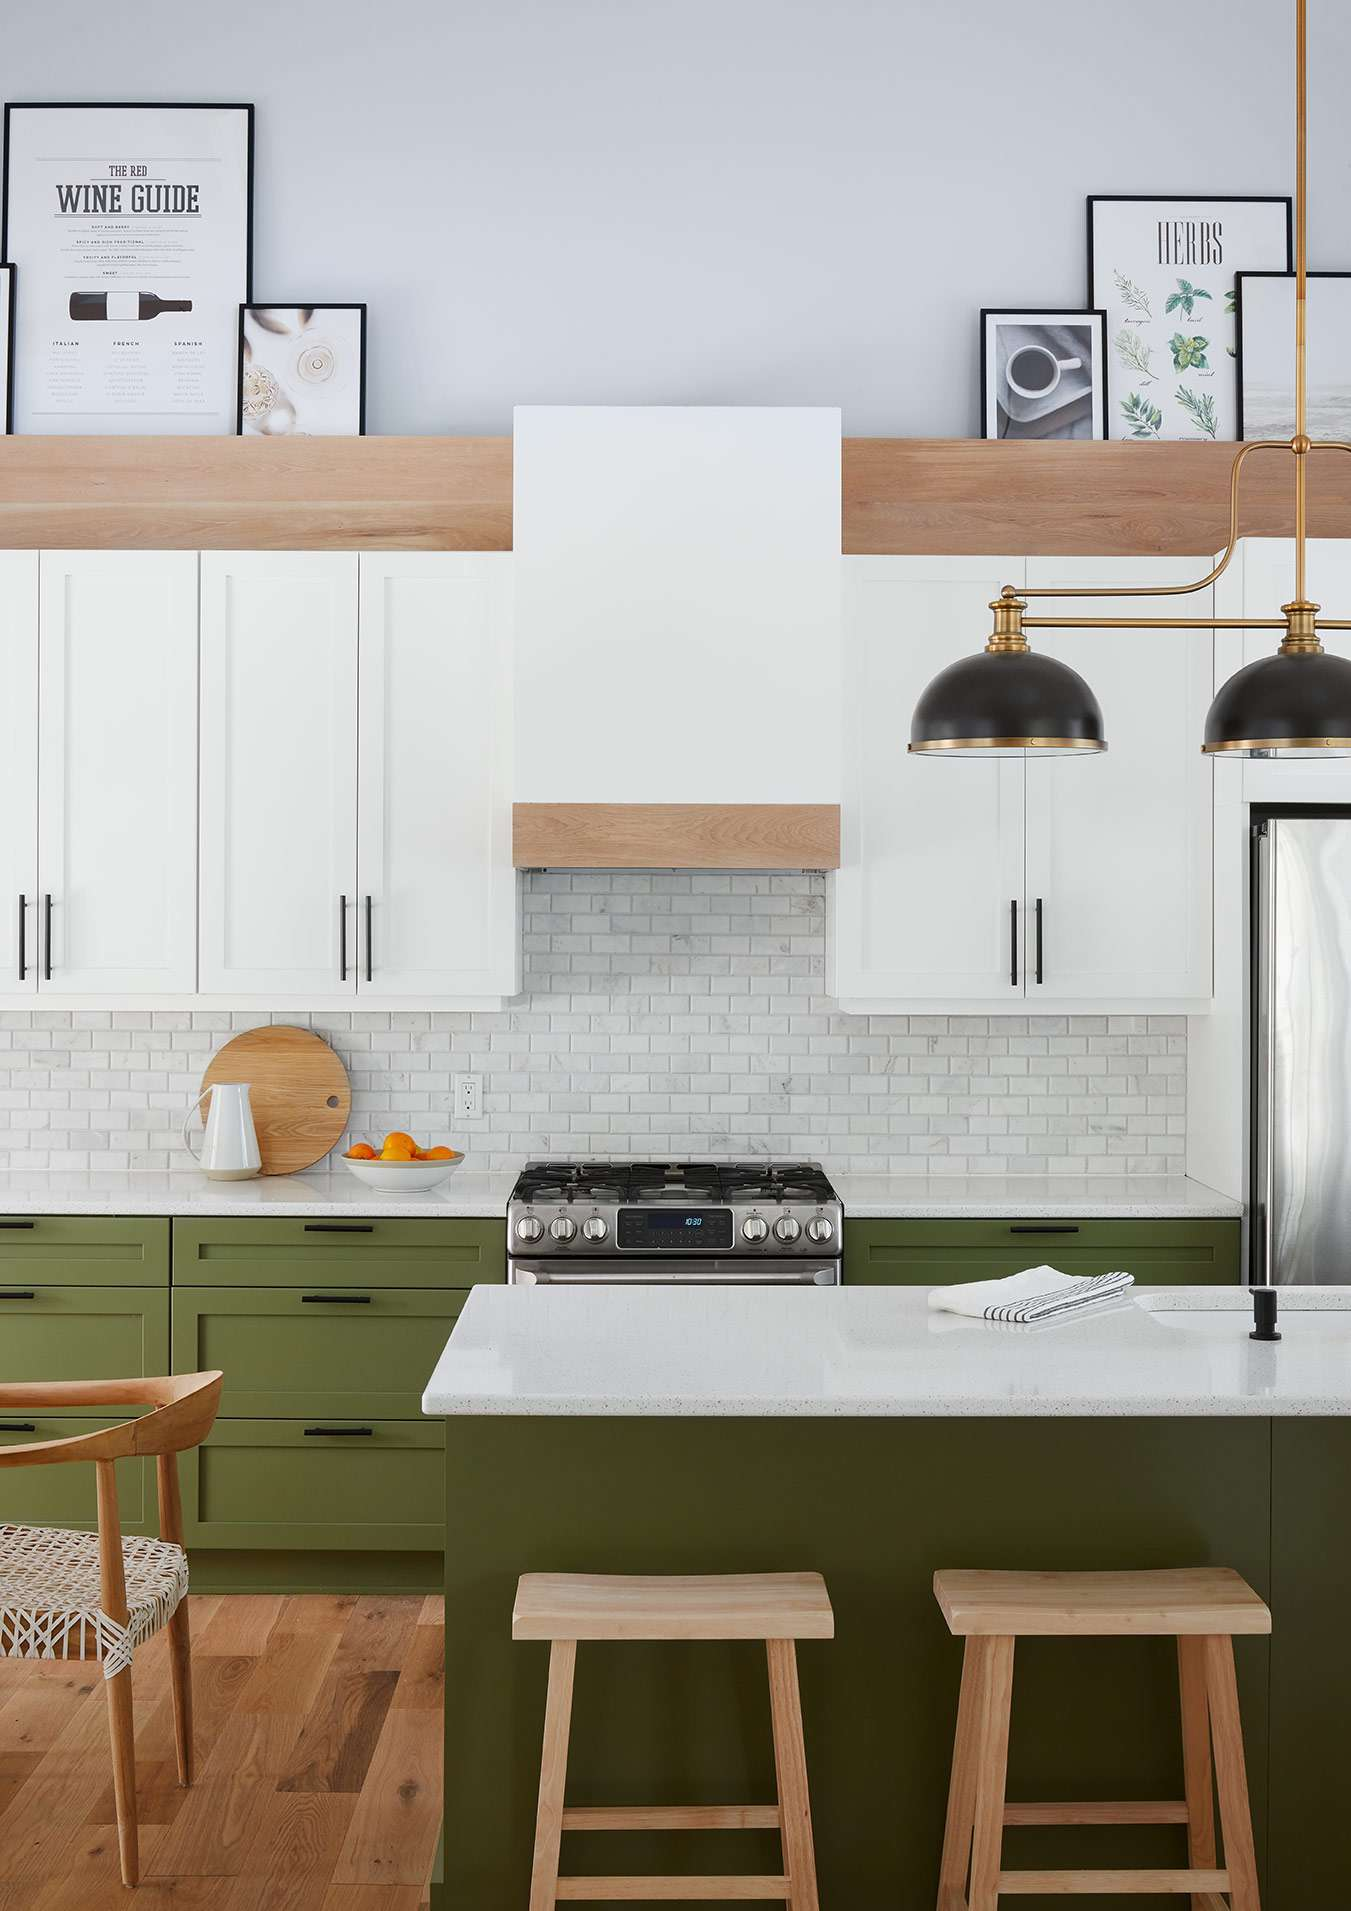 Green and light blue kitchen